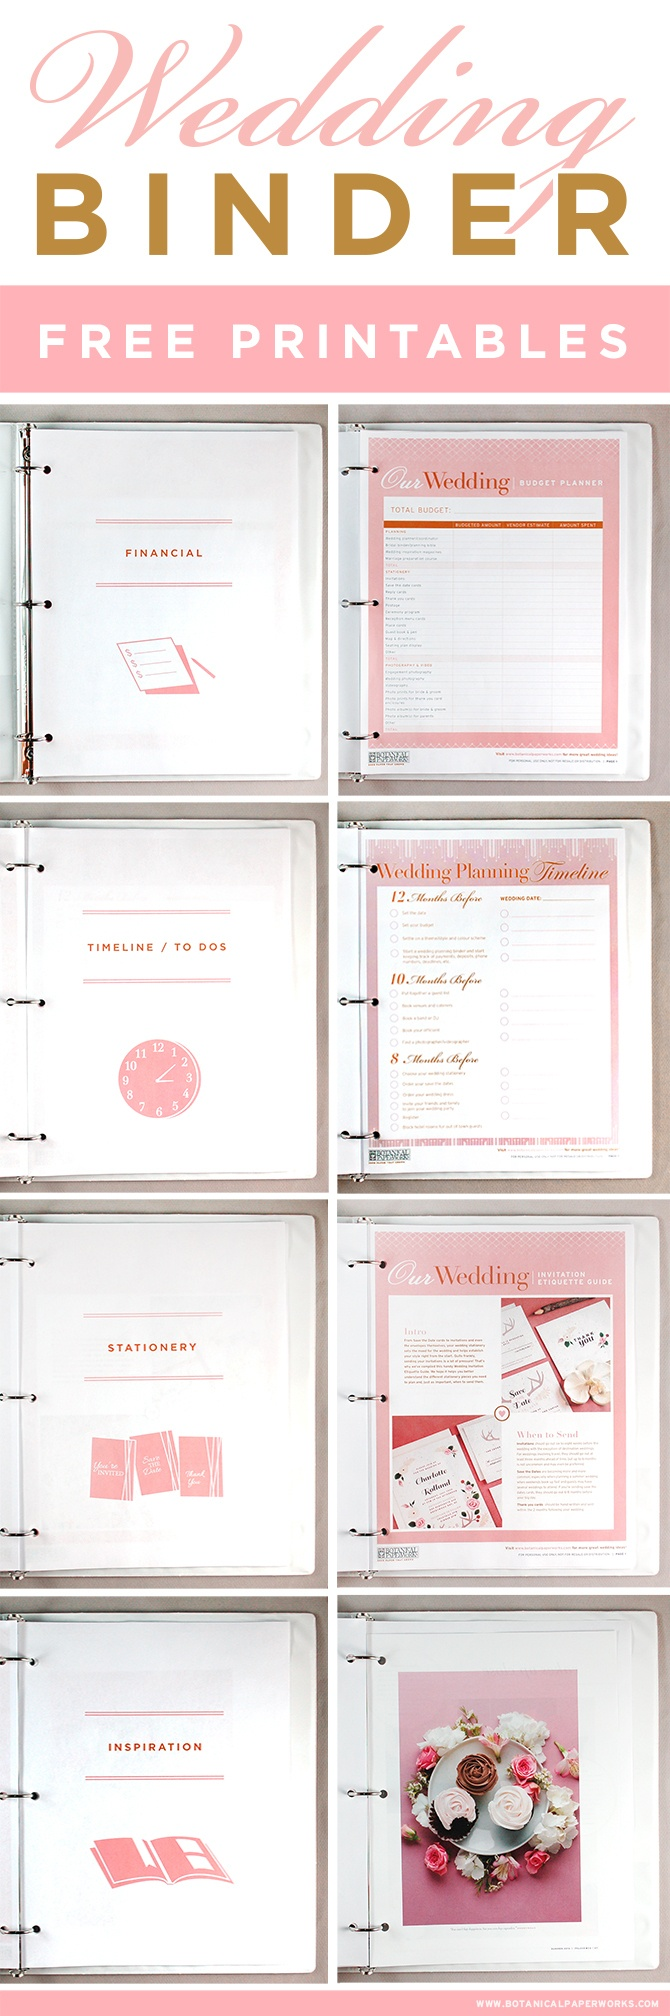 Free Printables} Wedding Planning Binder | Blog | Botanical Paperworks - Free Printable Wedding Binder Templates